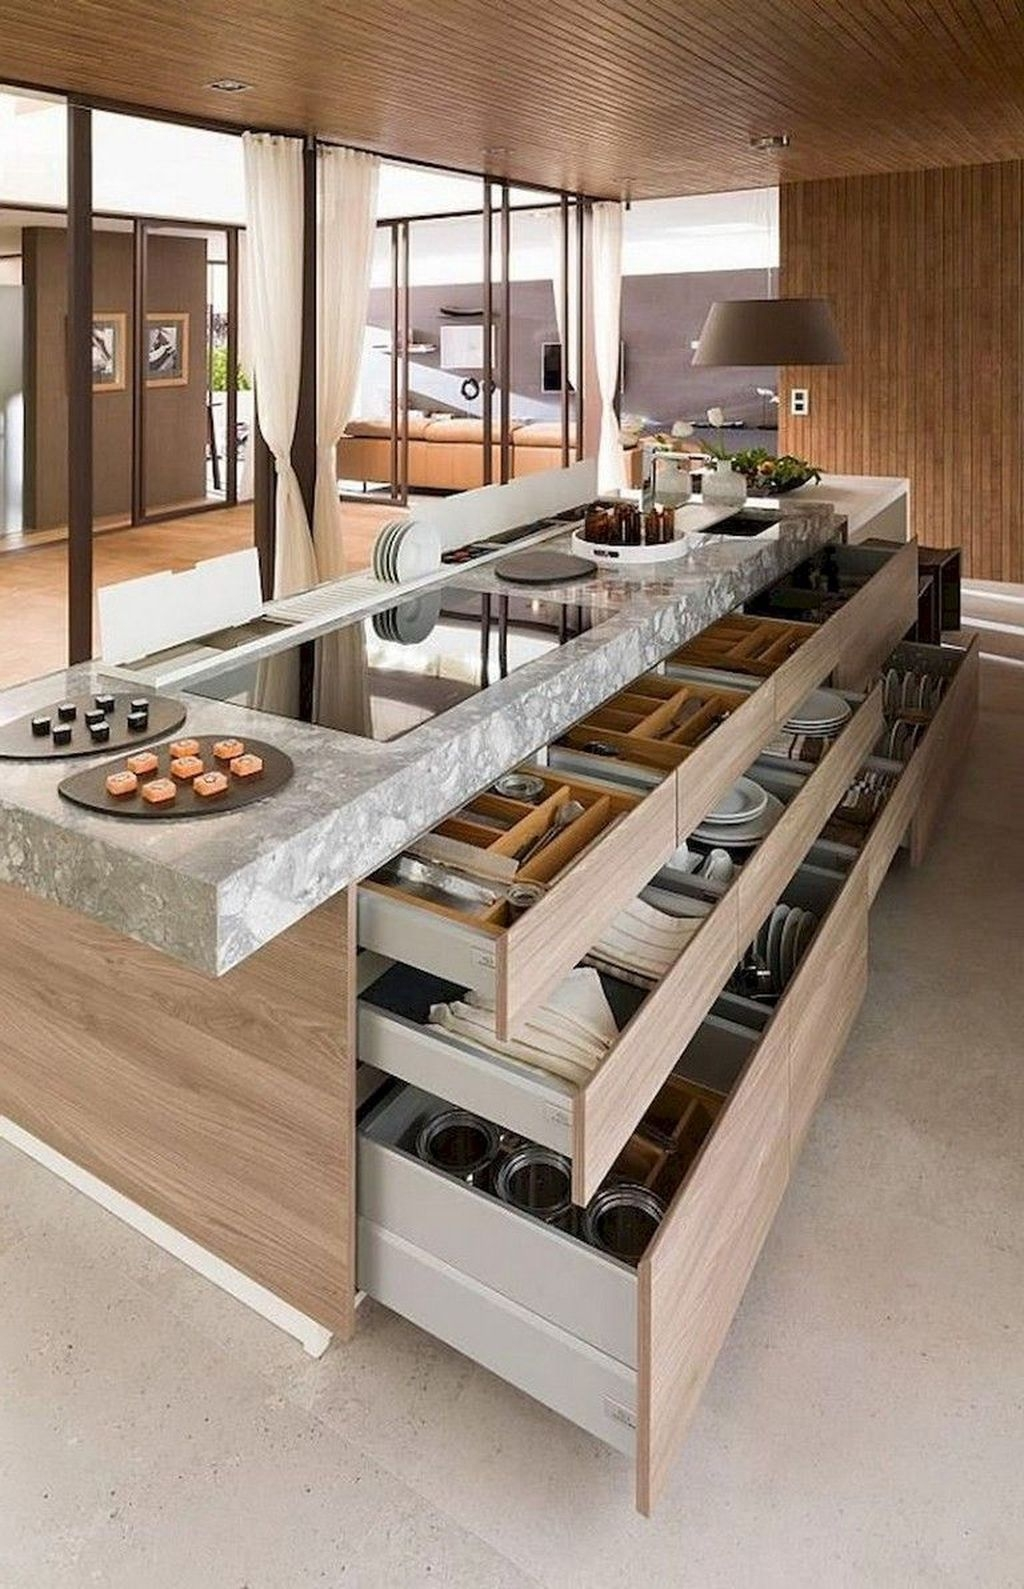 Inspiring Kitchen Storage Design Ideas 03